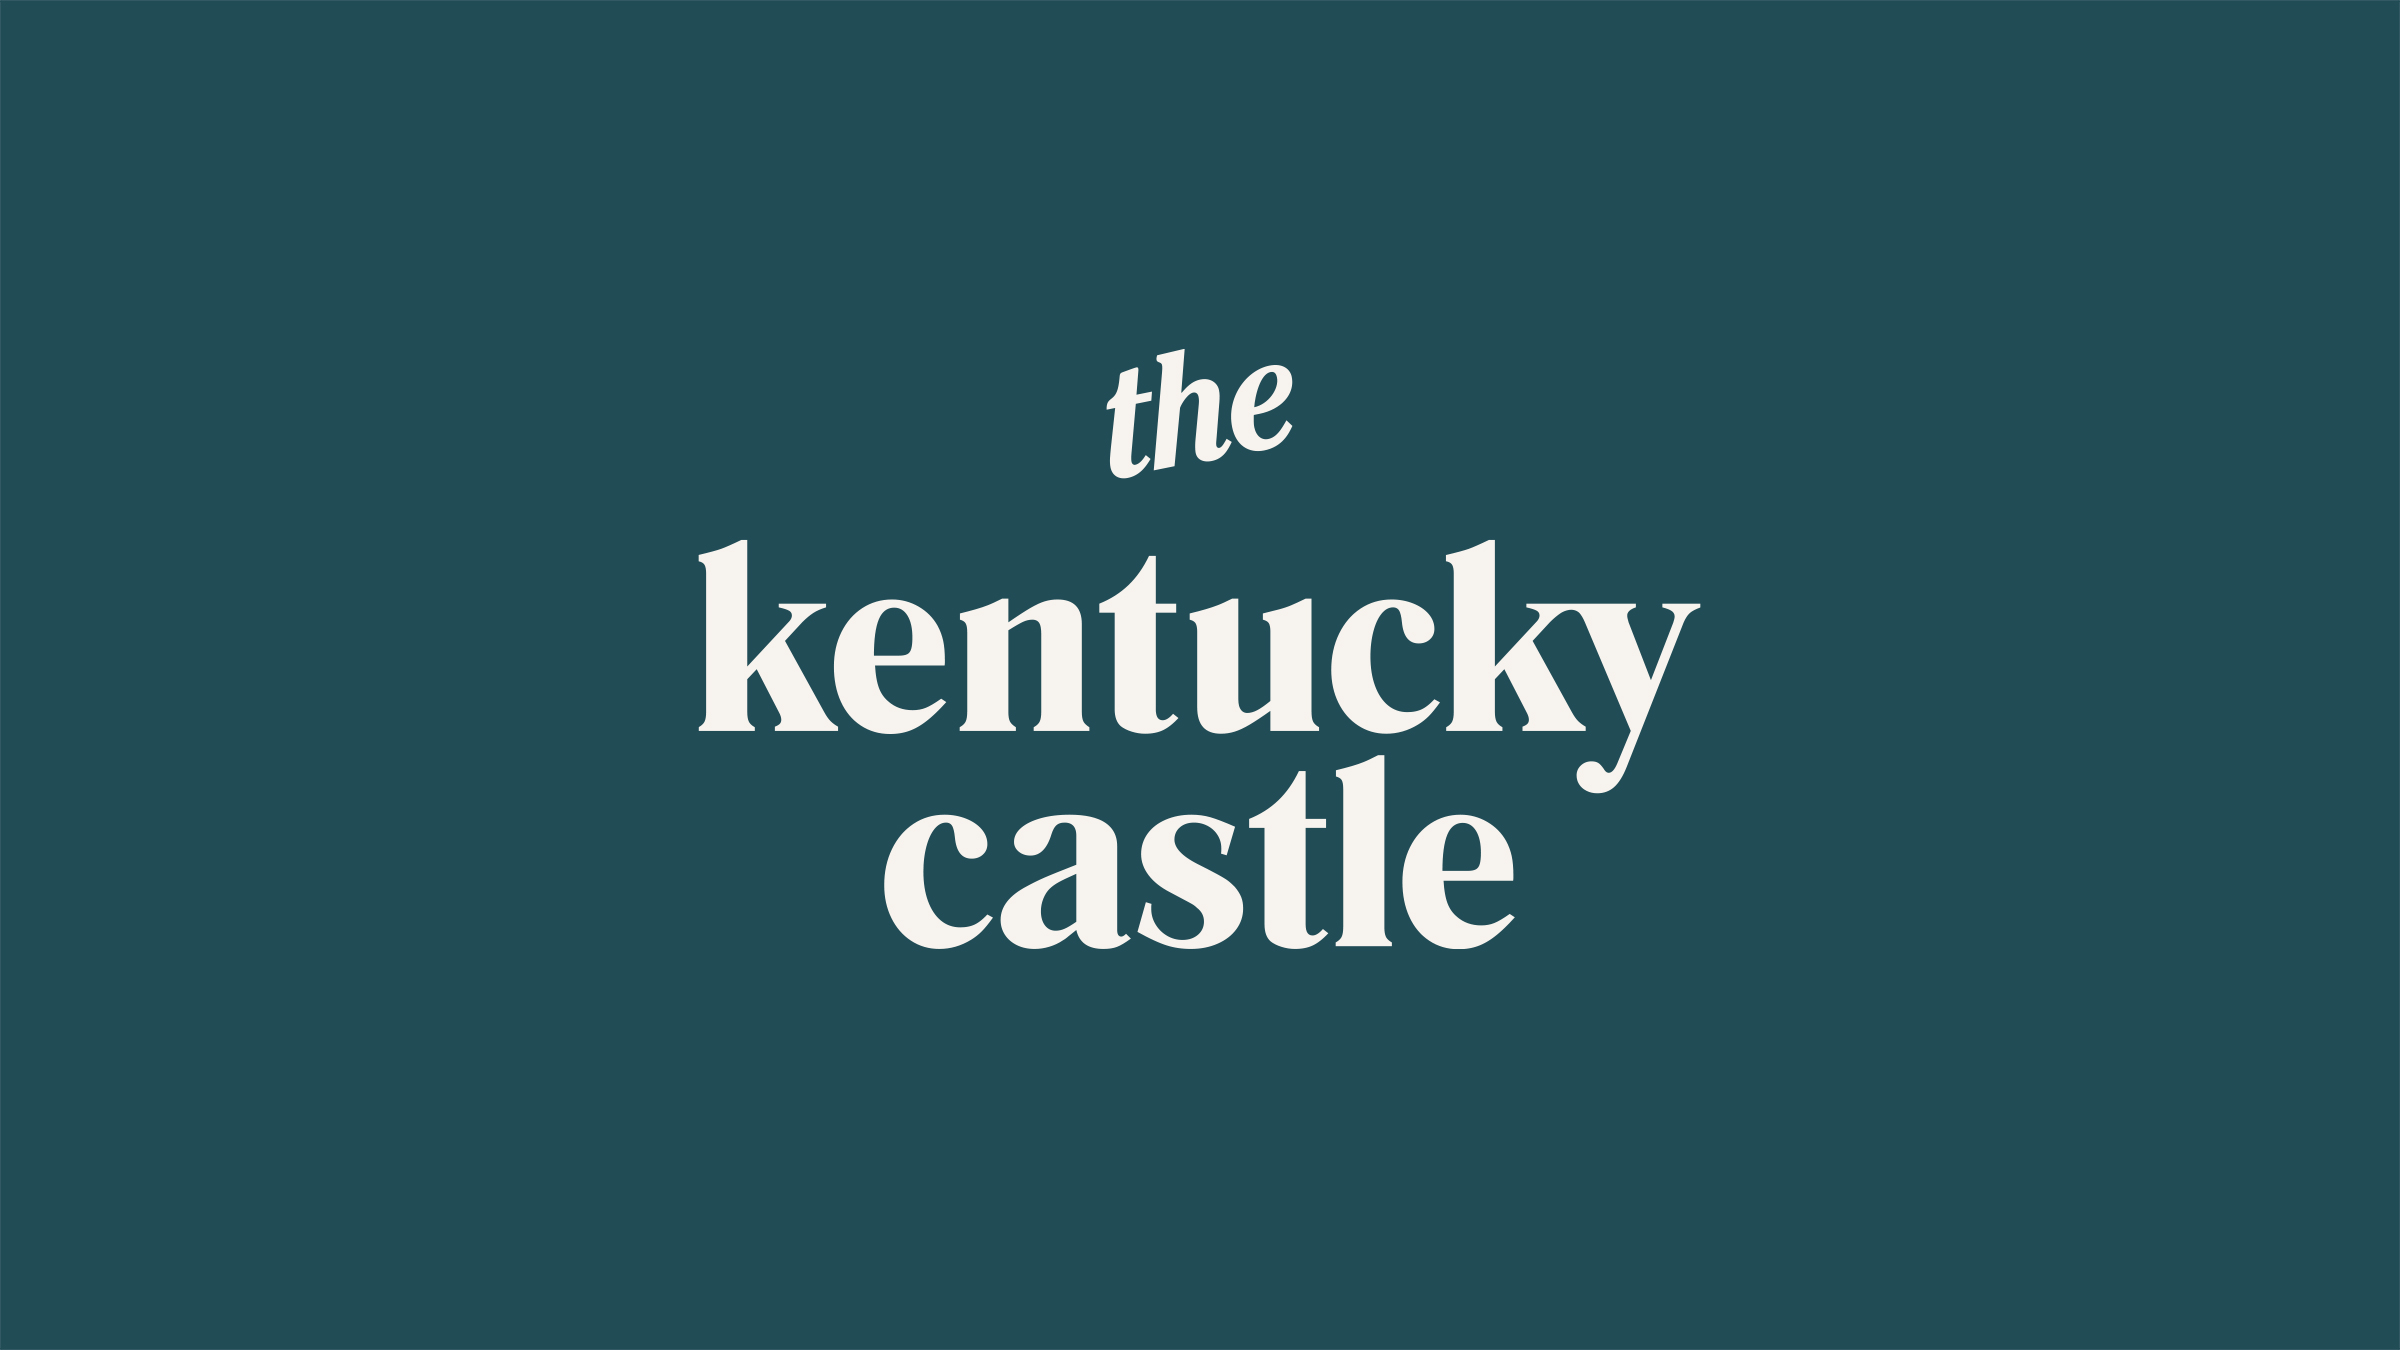 The Kentucky Castle brand logo white on green